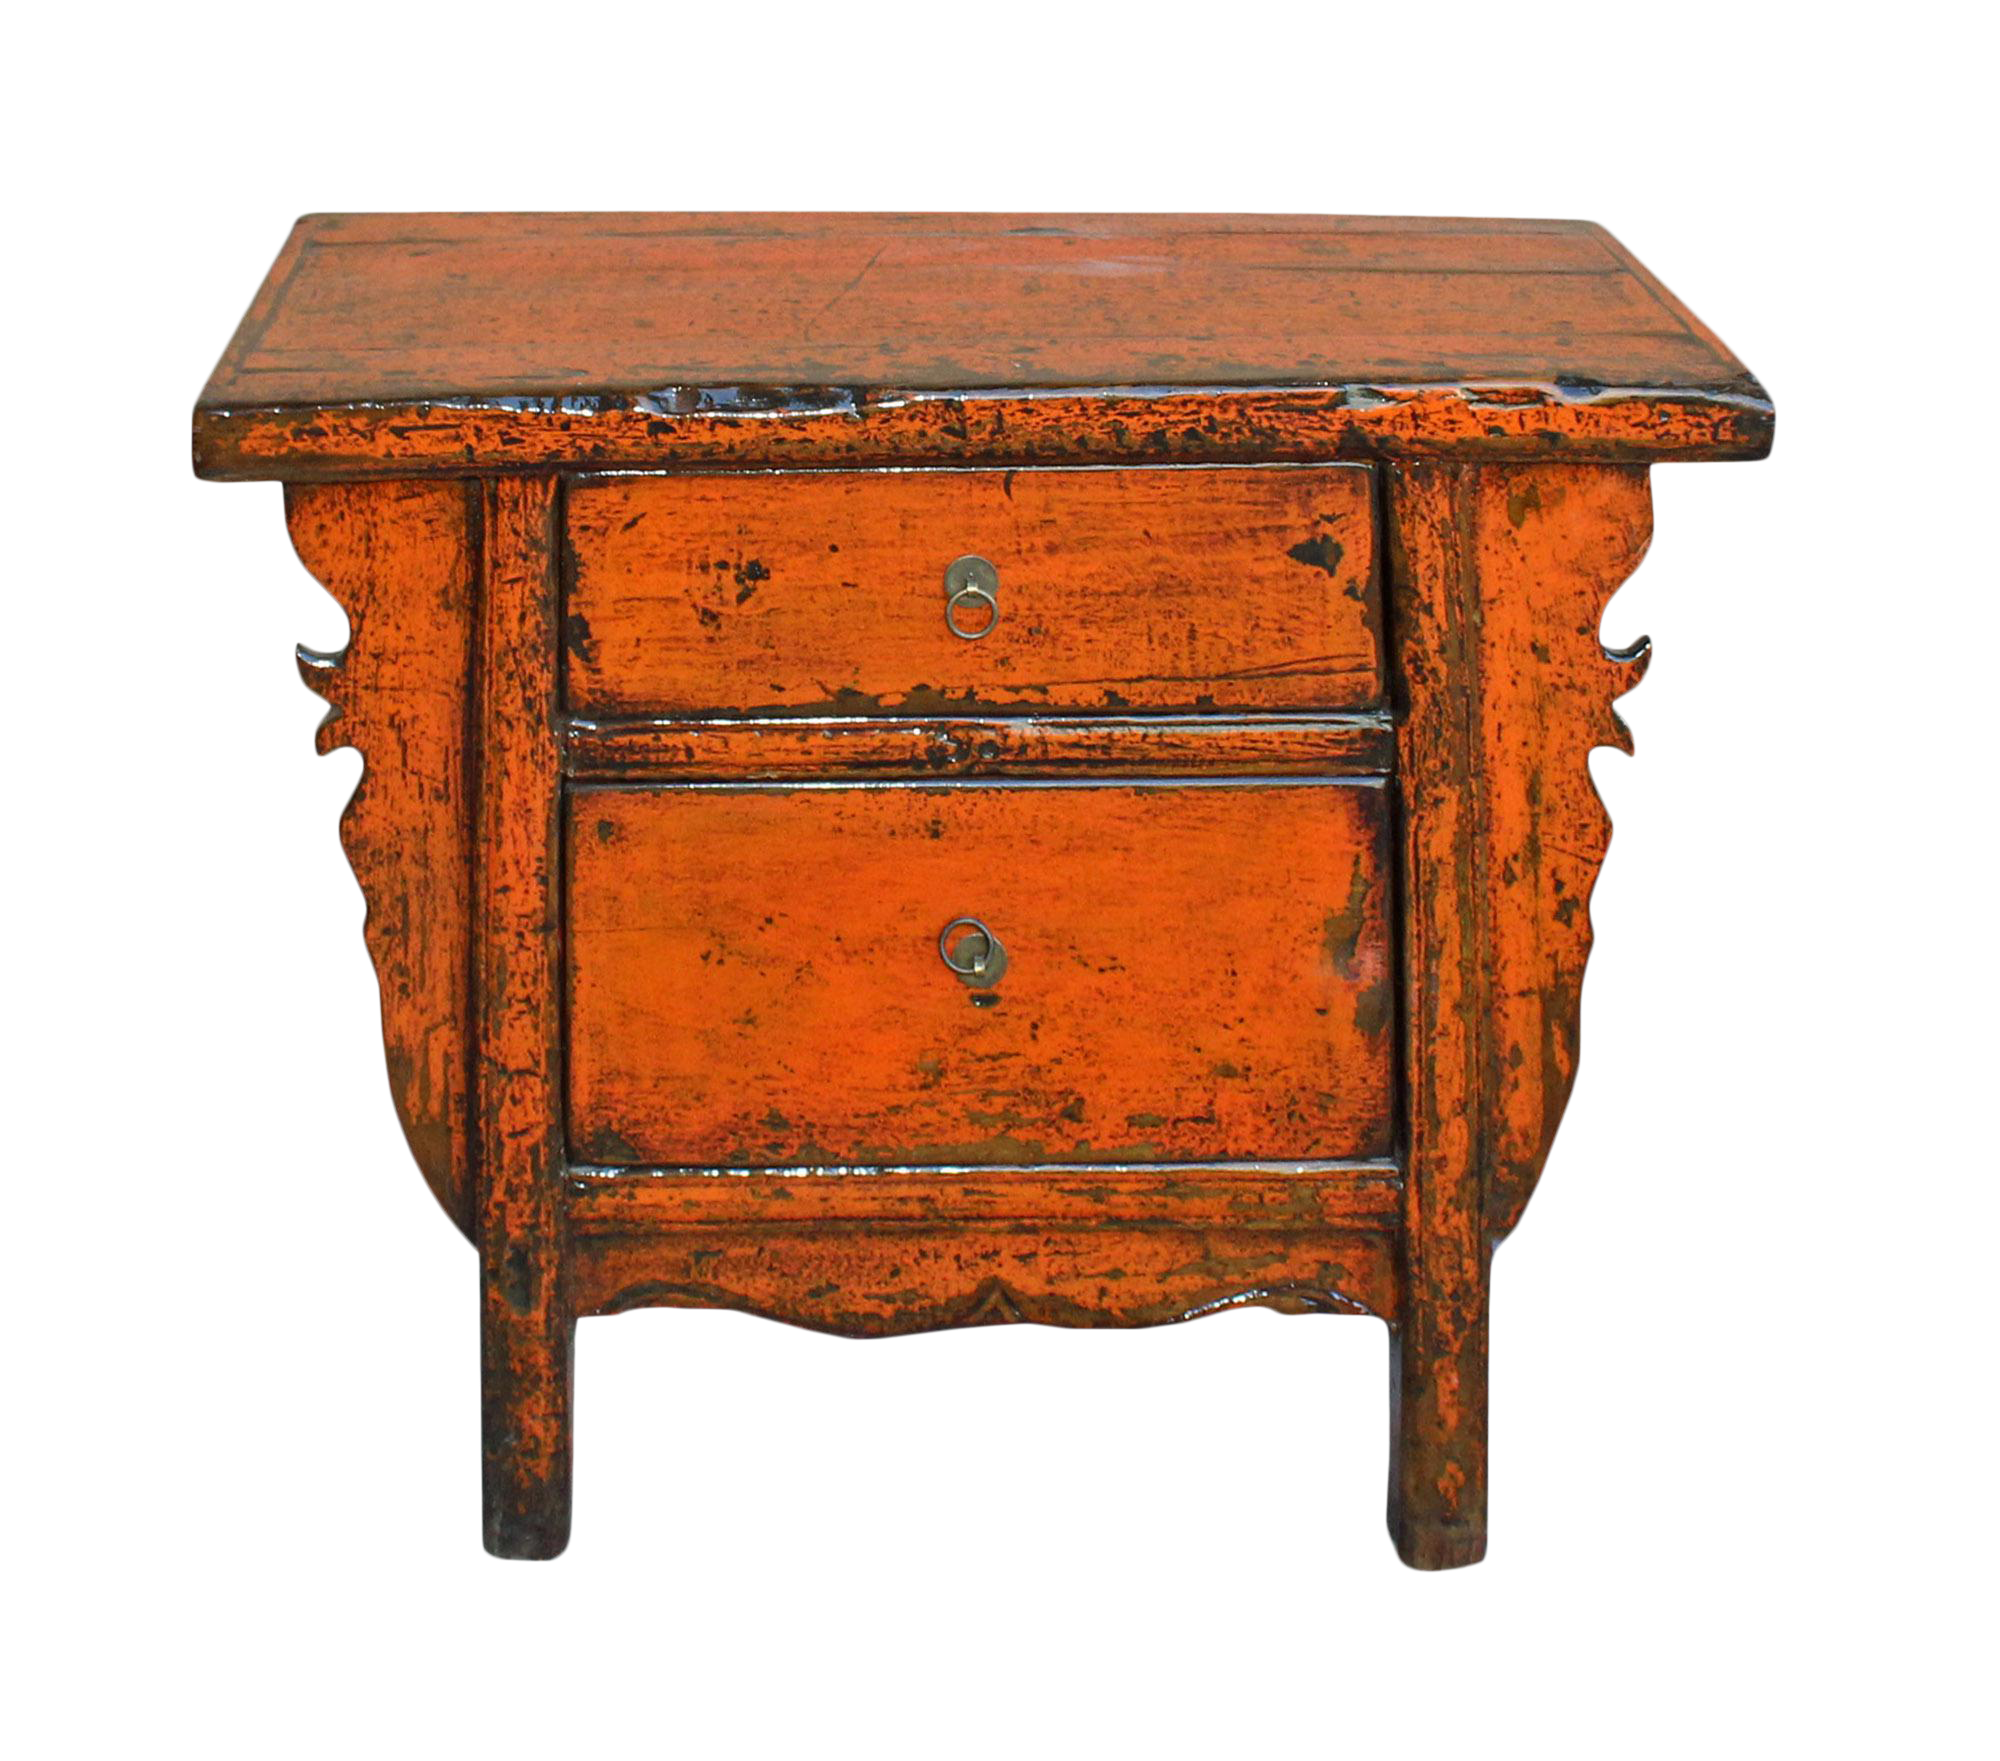 Chinese Rustic Rough Wood Distressed Orange Side Table Cabinet